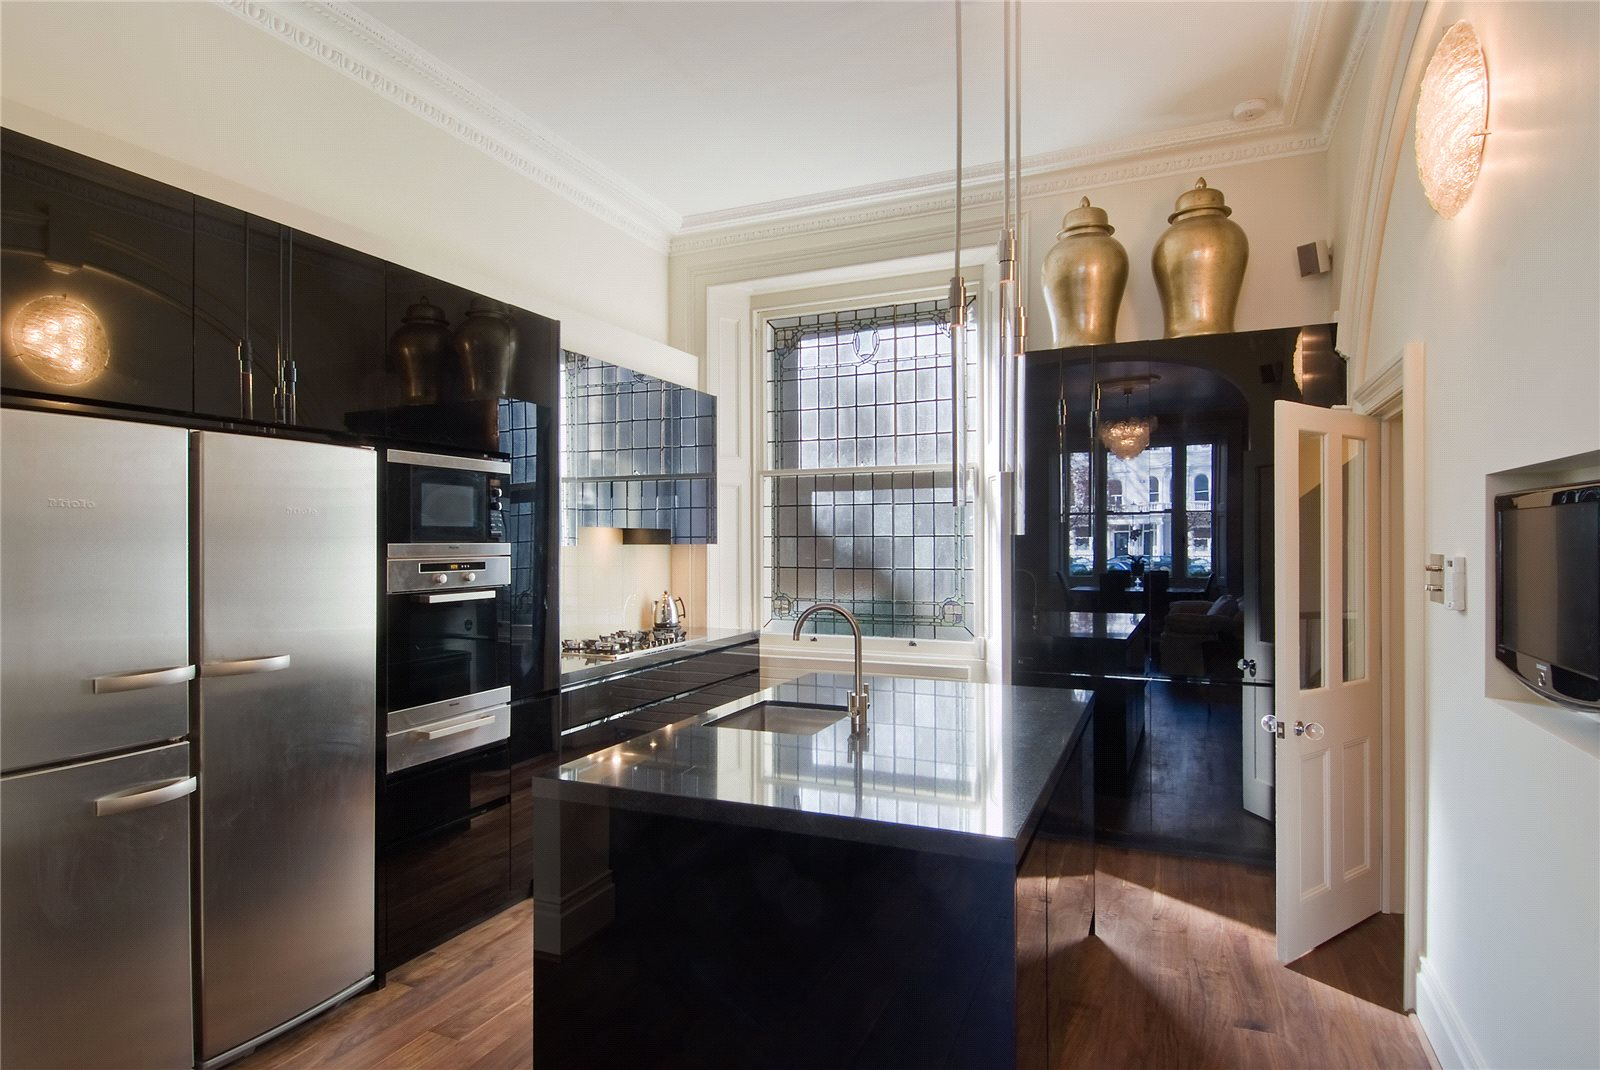 Apartamento por un Venta en Cornwall Gardens, South Kensington, London, SW7 South Kensington, London, Inglaterra